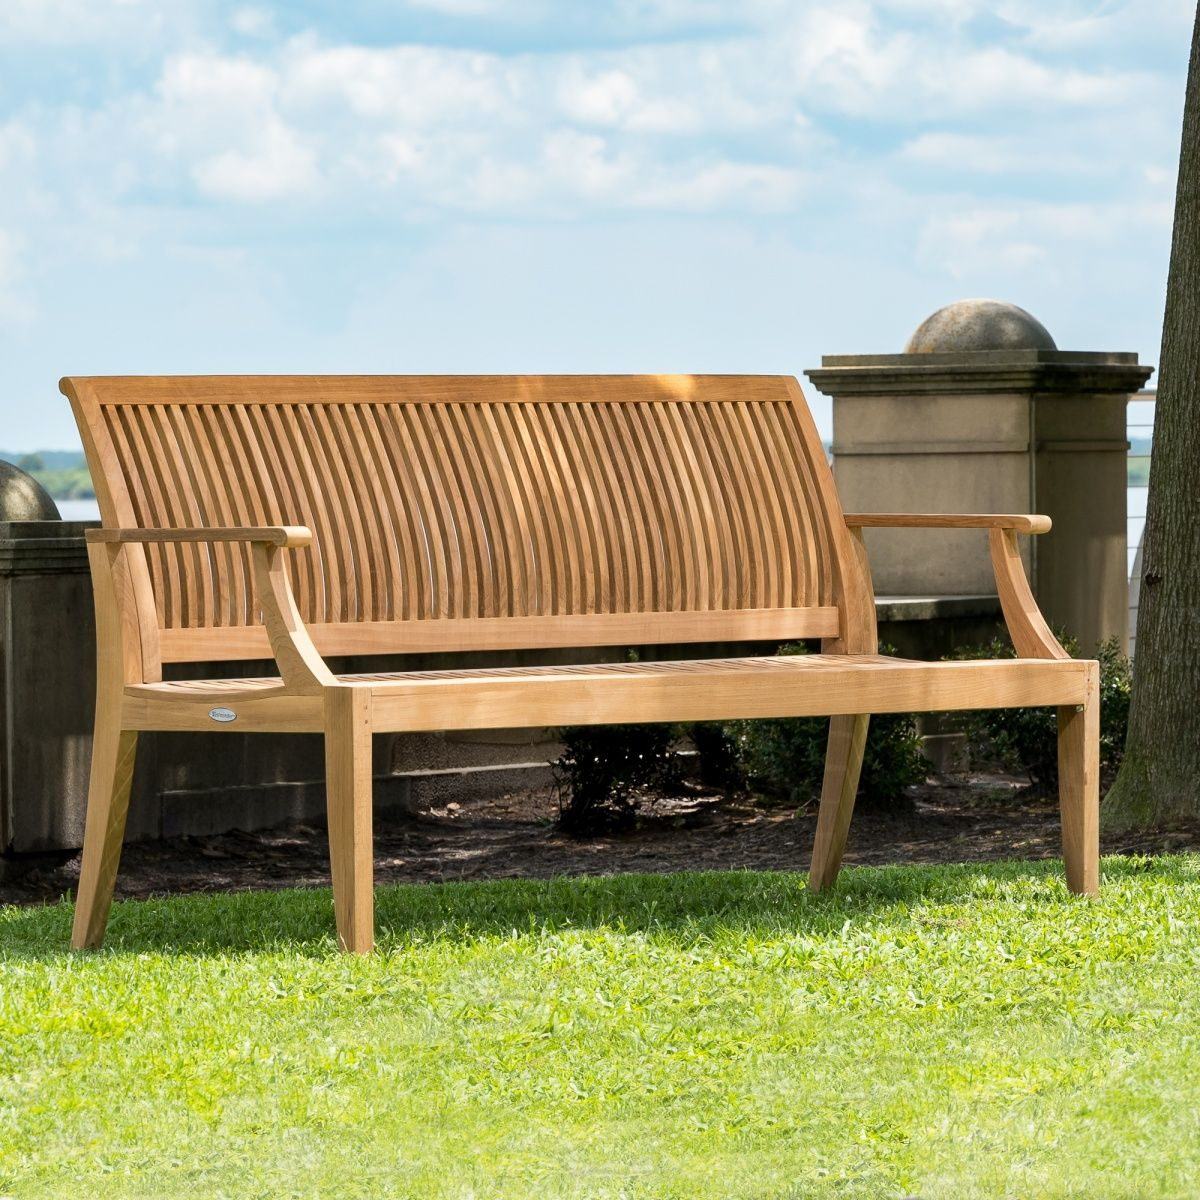 Laguna Teak Outdoor Bench 5 Ft Commercial Grade Westminster Teak Outdoor Furniture Teak Garden Bench Teak Bench Outdoor Bench